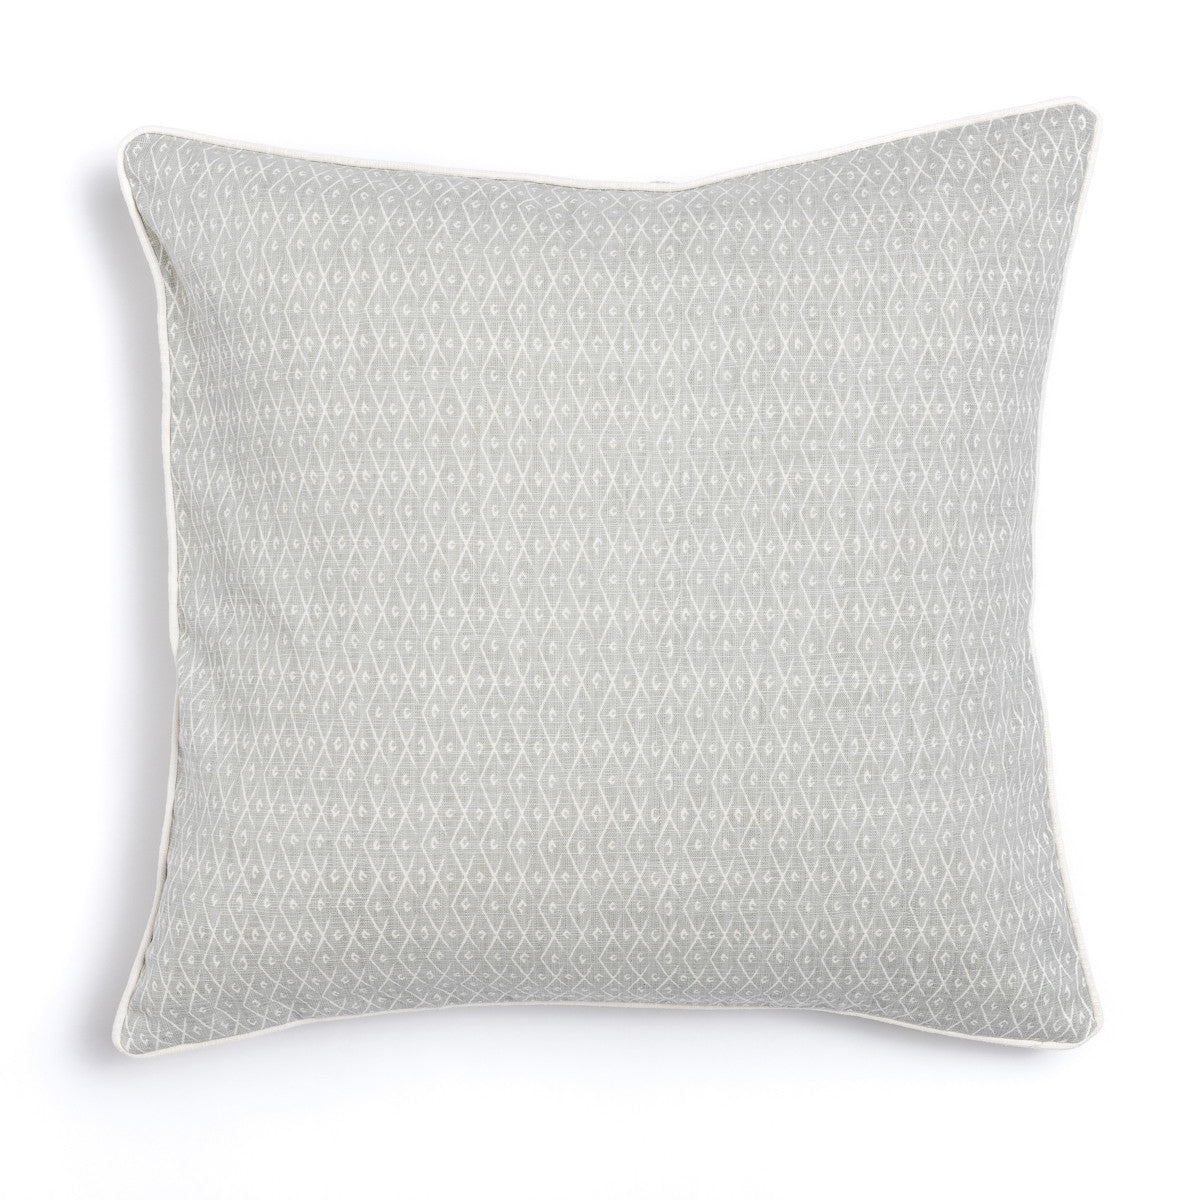 "Pebble 20"" x 20"" Triangles + Criscross Reversible Accent Pillow"